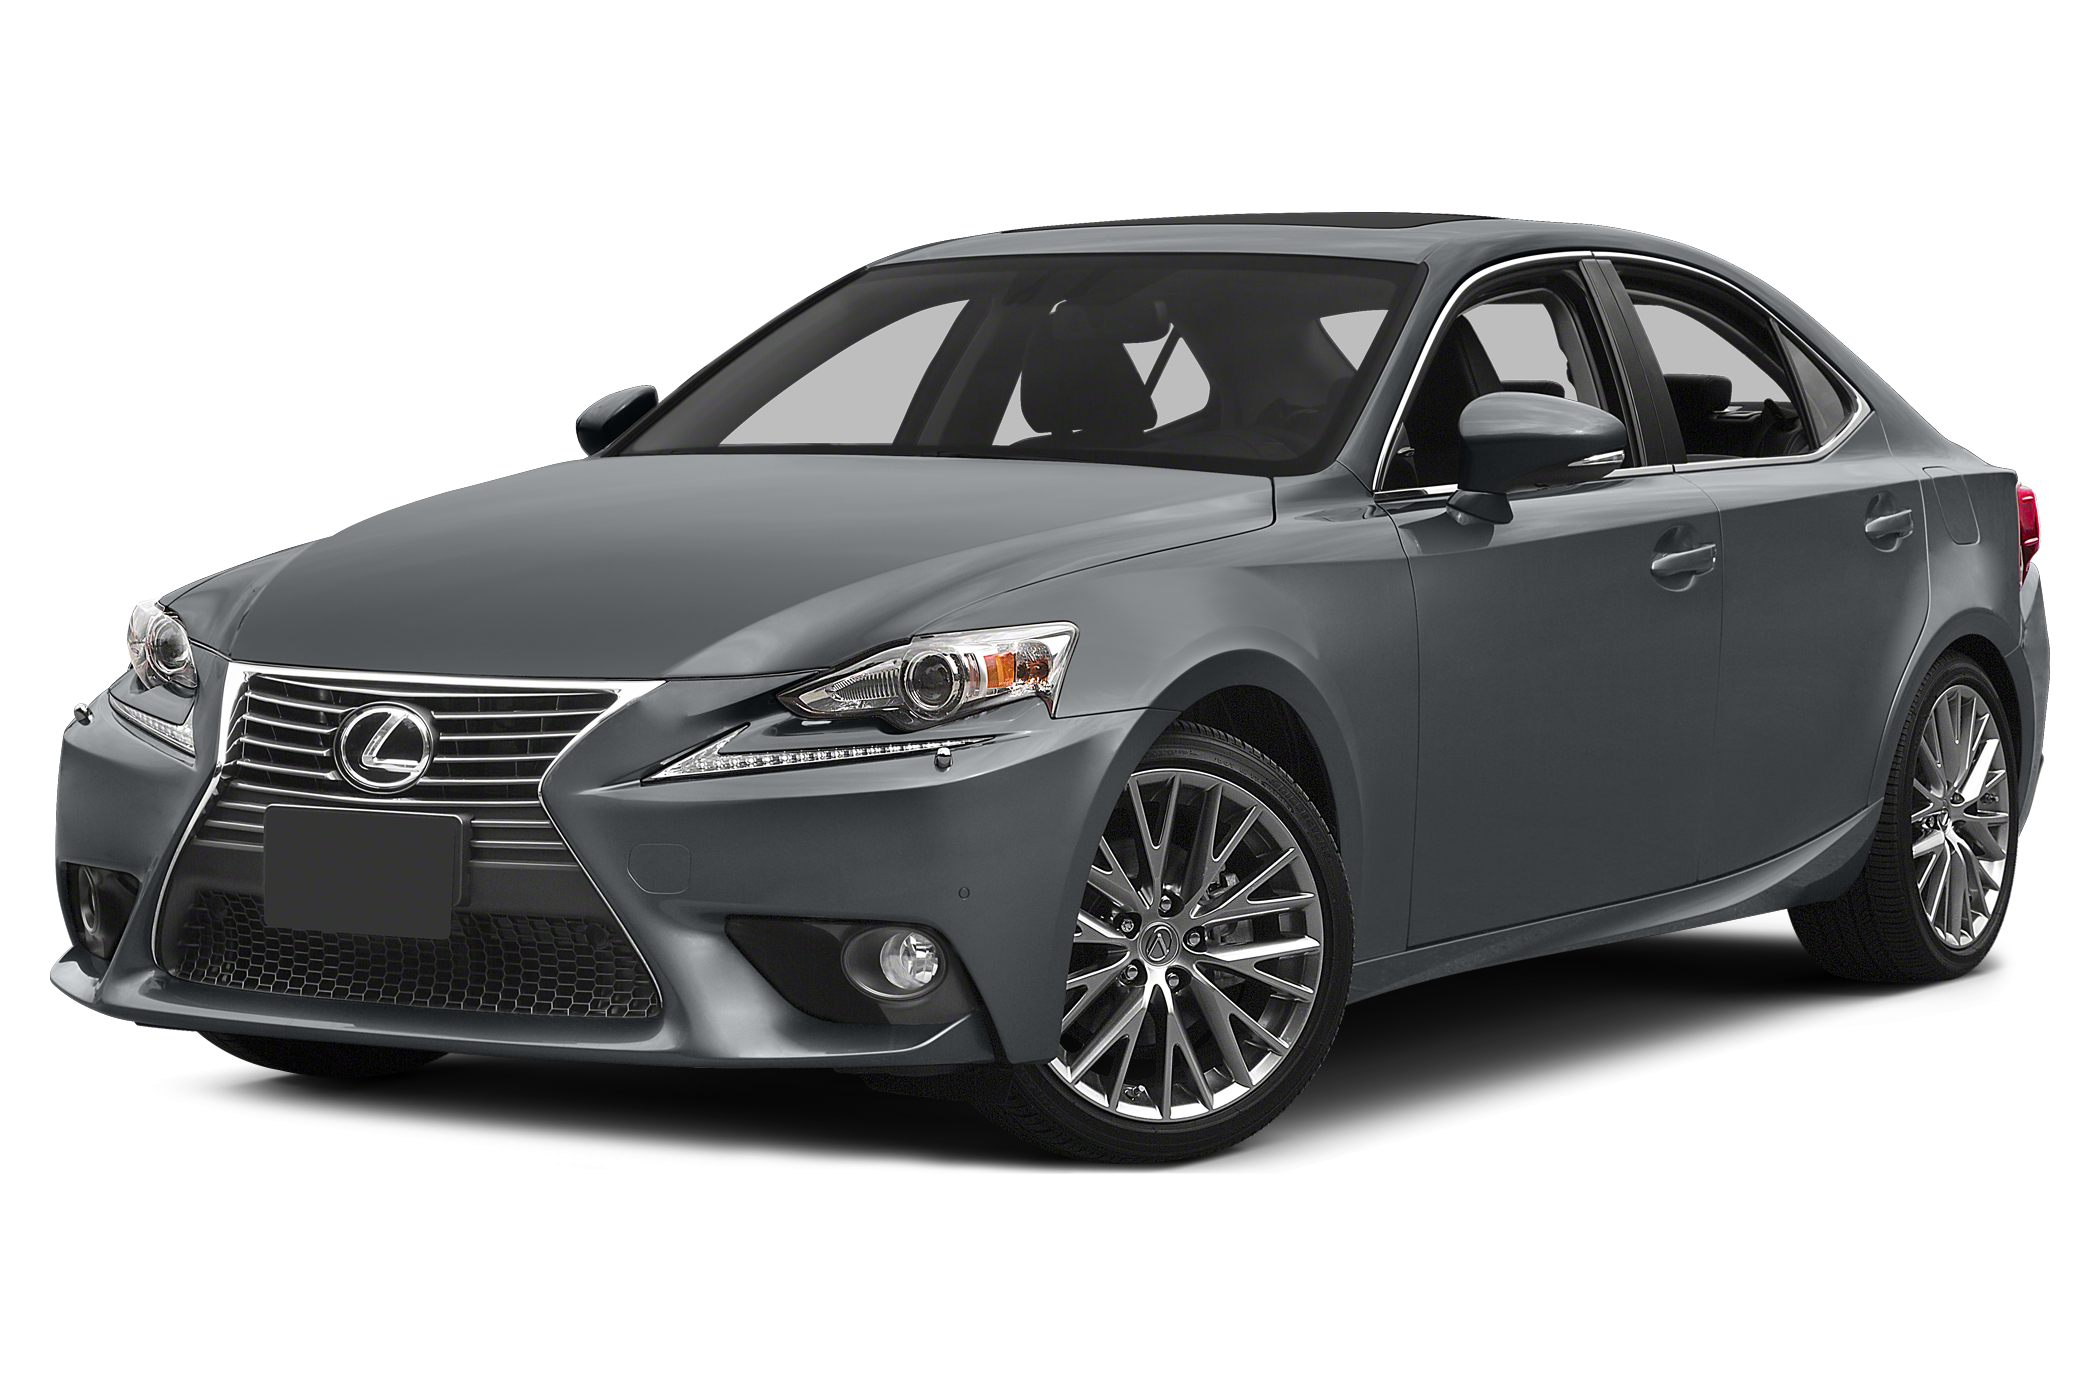 2015 Lexus IS 250 Base Sedan for sale in Escondido for $42,808 with 8 miles